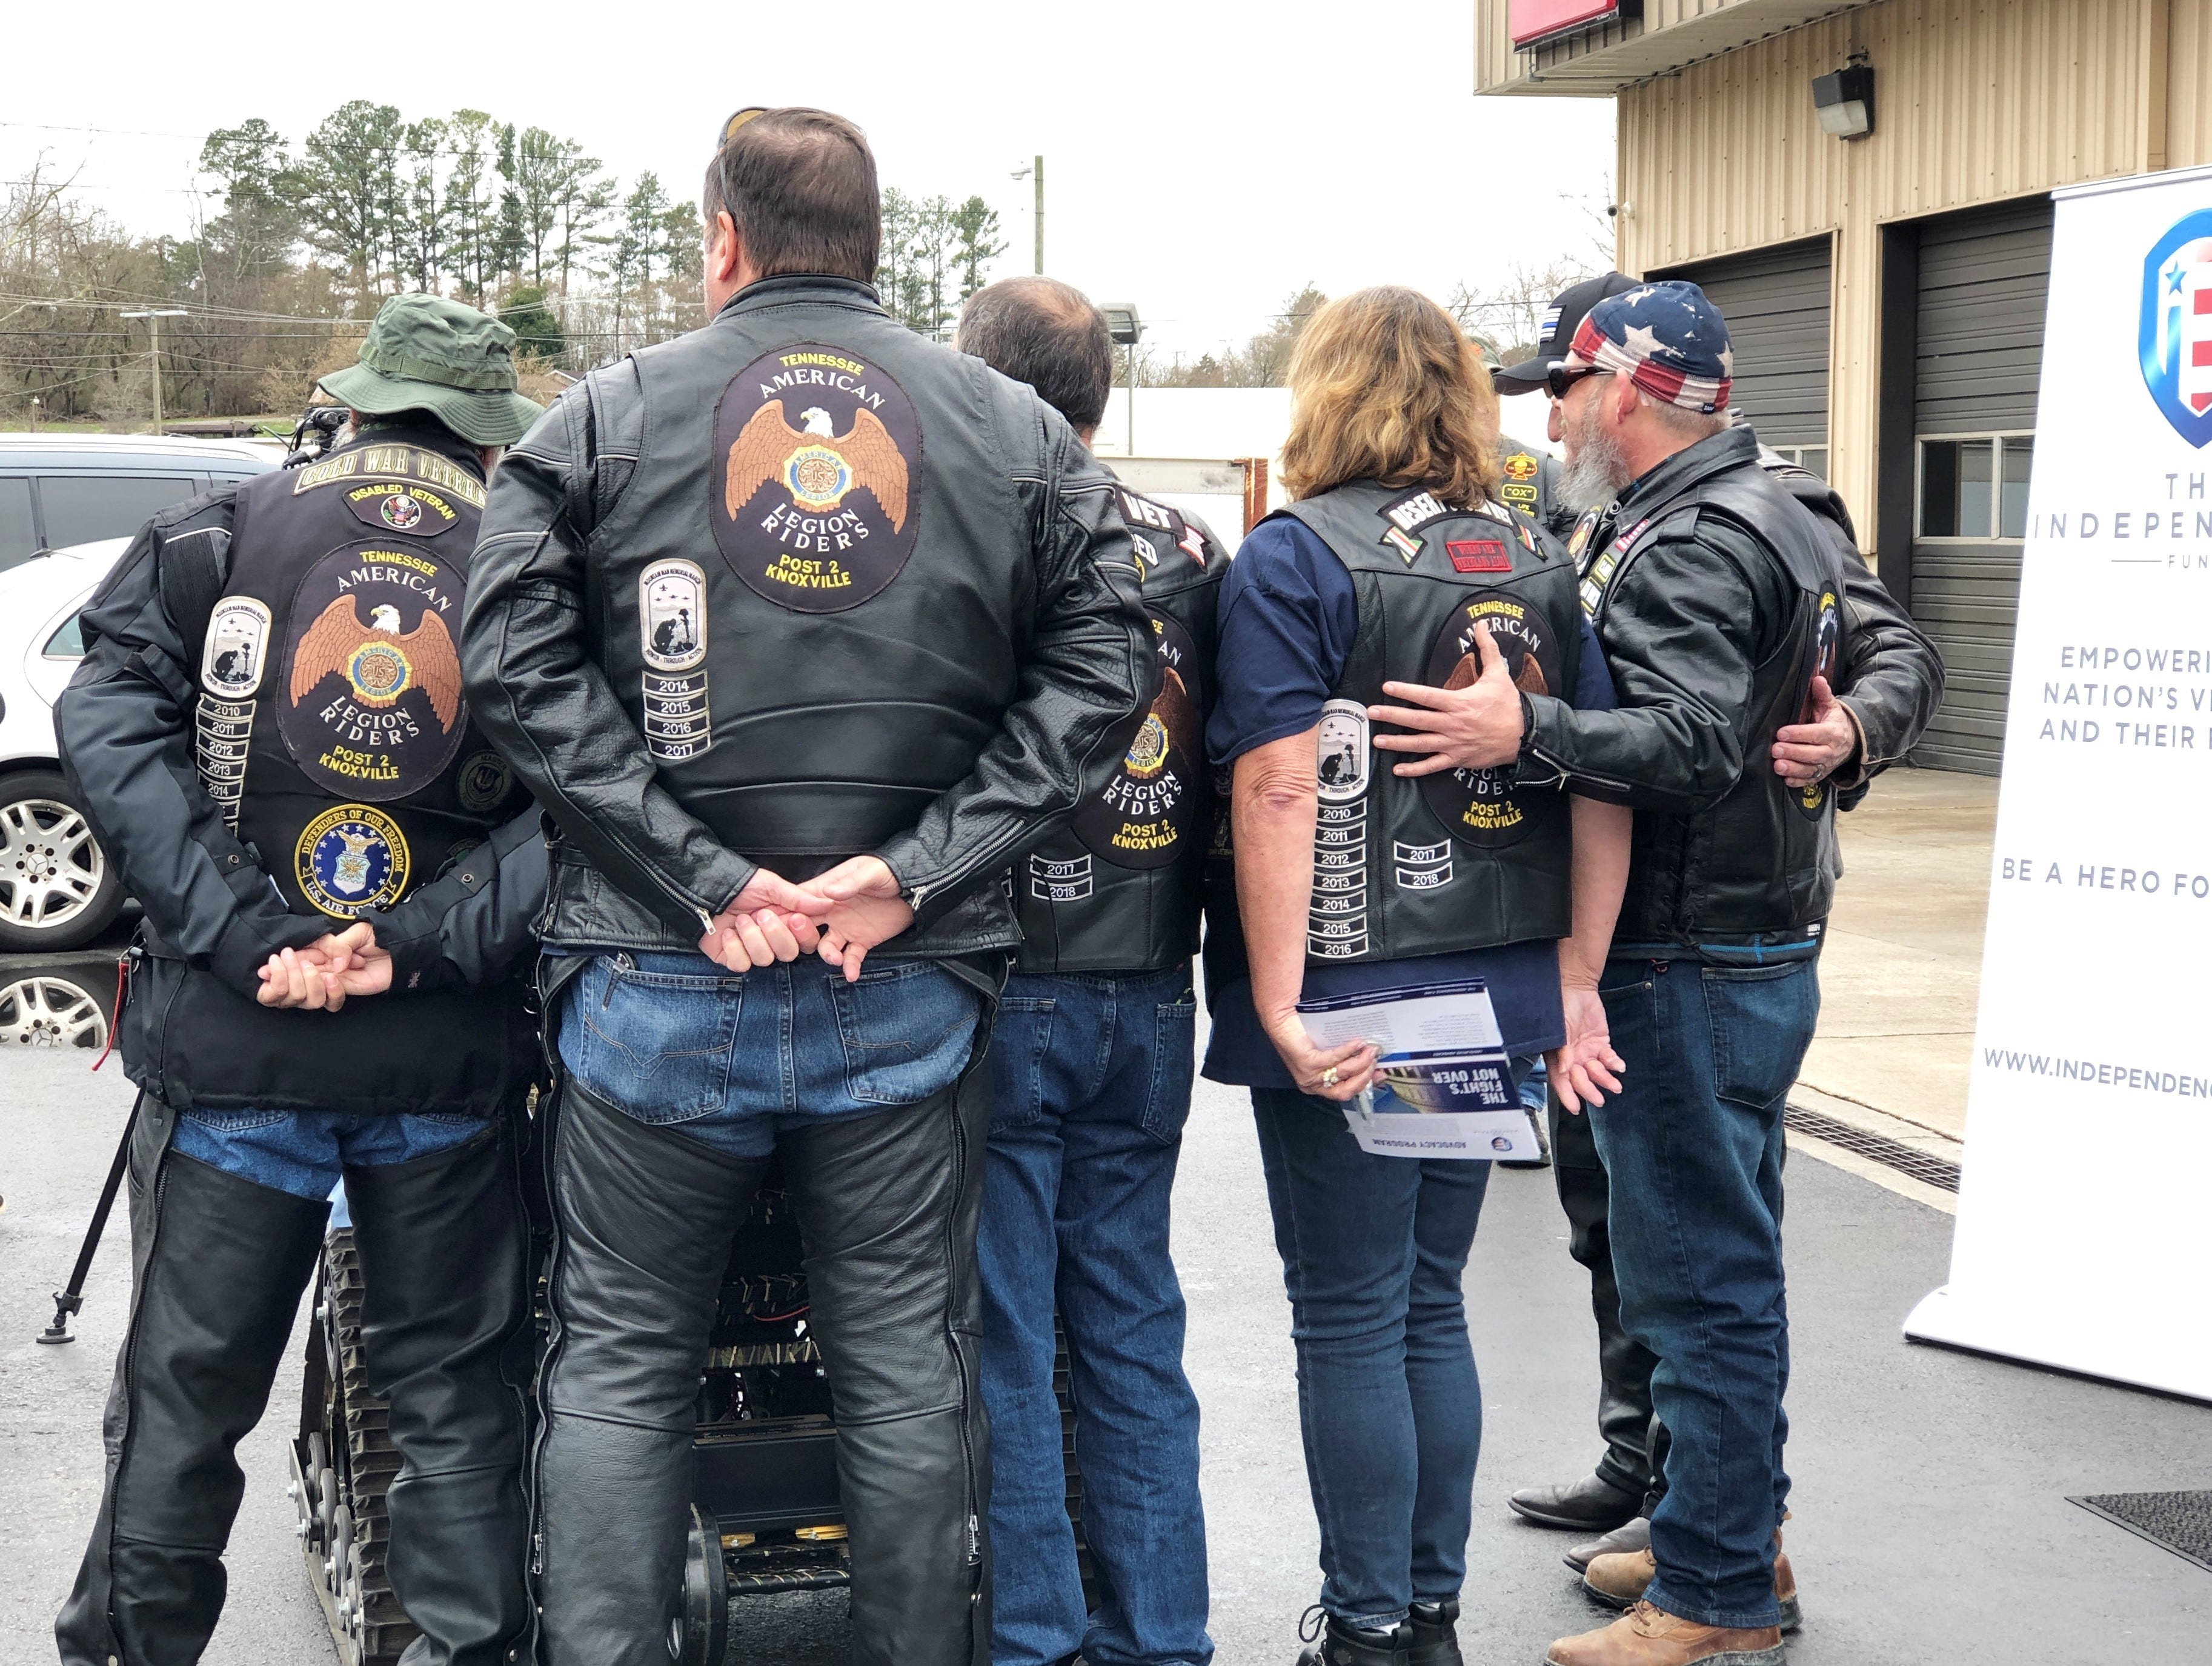 American Legion Riders' Knoxville Charter at the presentation of an all-terrain wheelchair to combat veteran and medically retired U.S. Army Staff Sgt. Dameon Berry at Halls Service Center on Feb. 16.